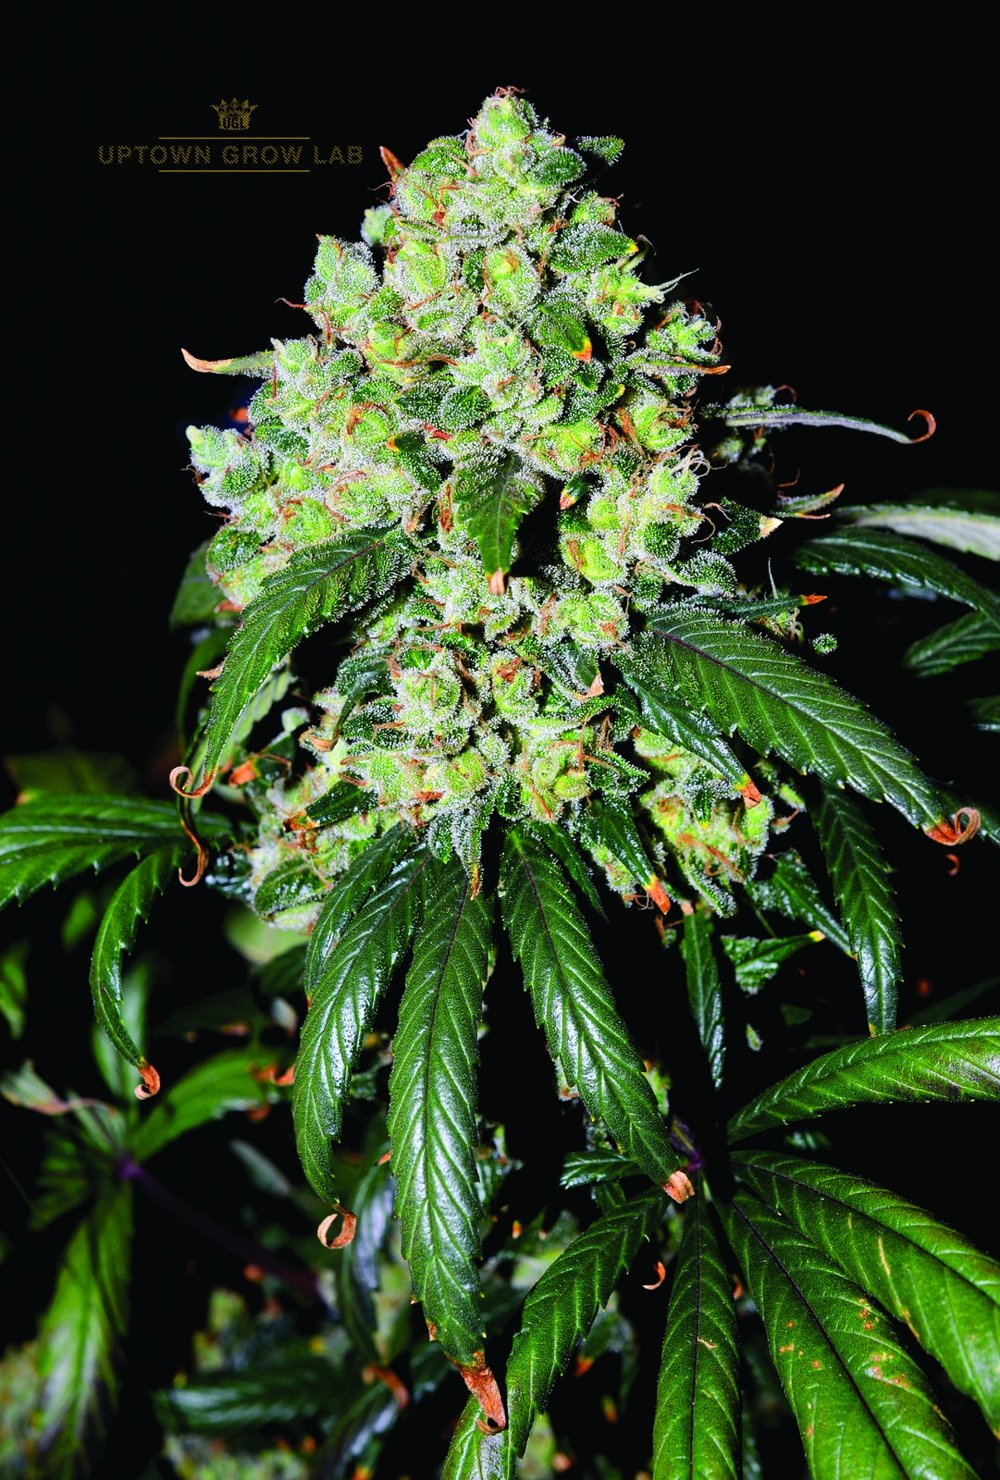 UPTOWN GROW LAB'S MONKEYBOY KUSH